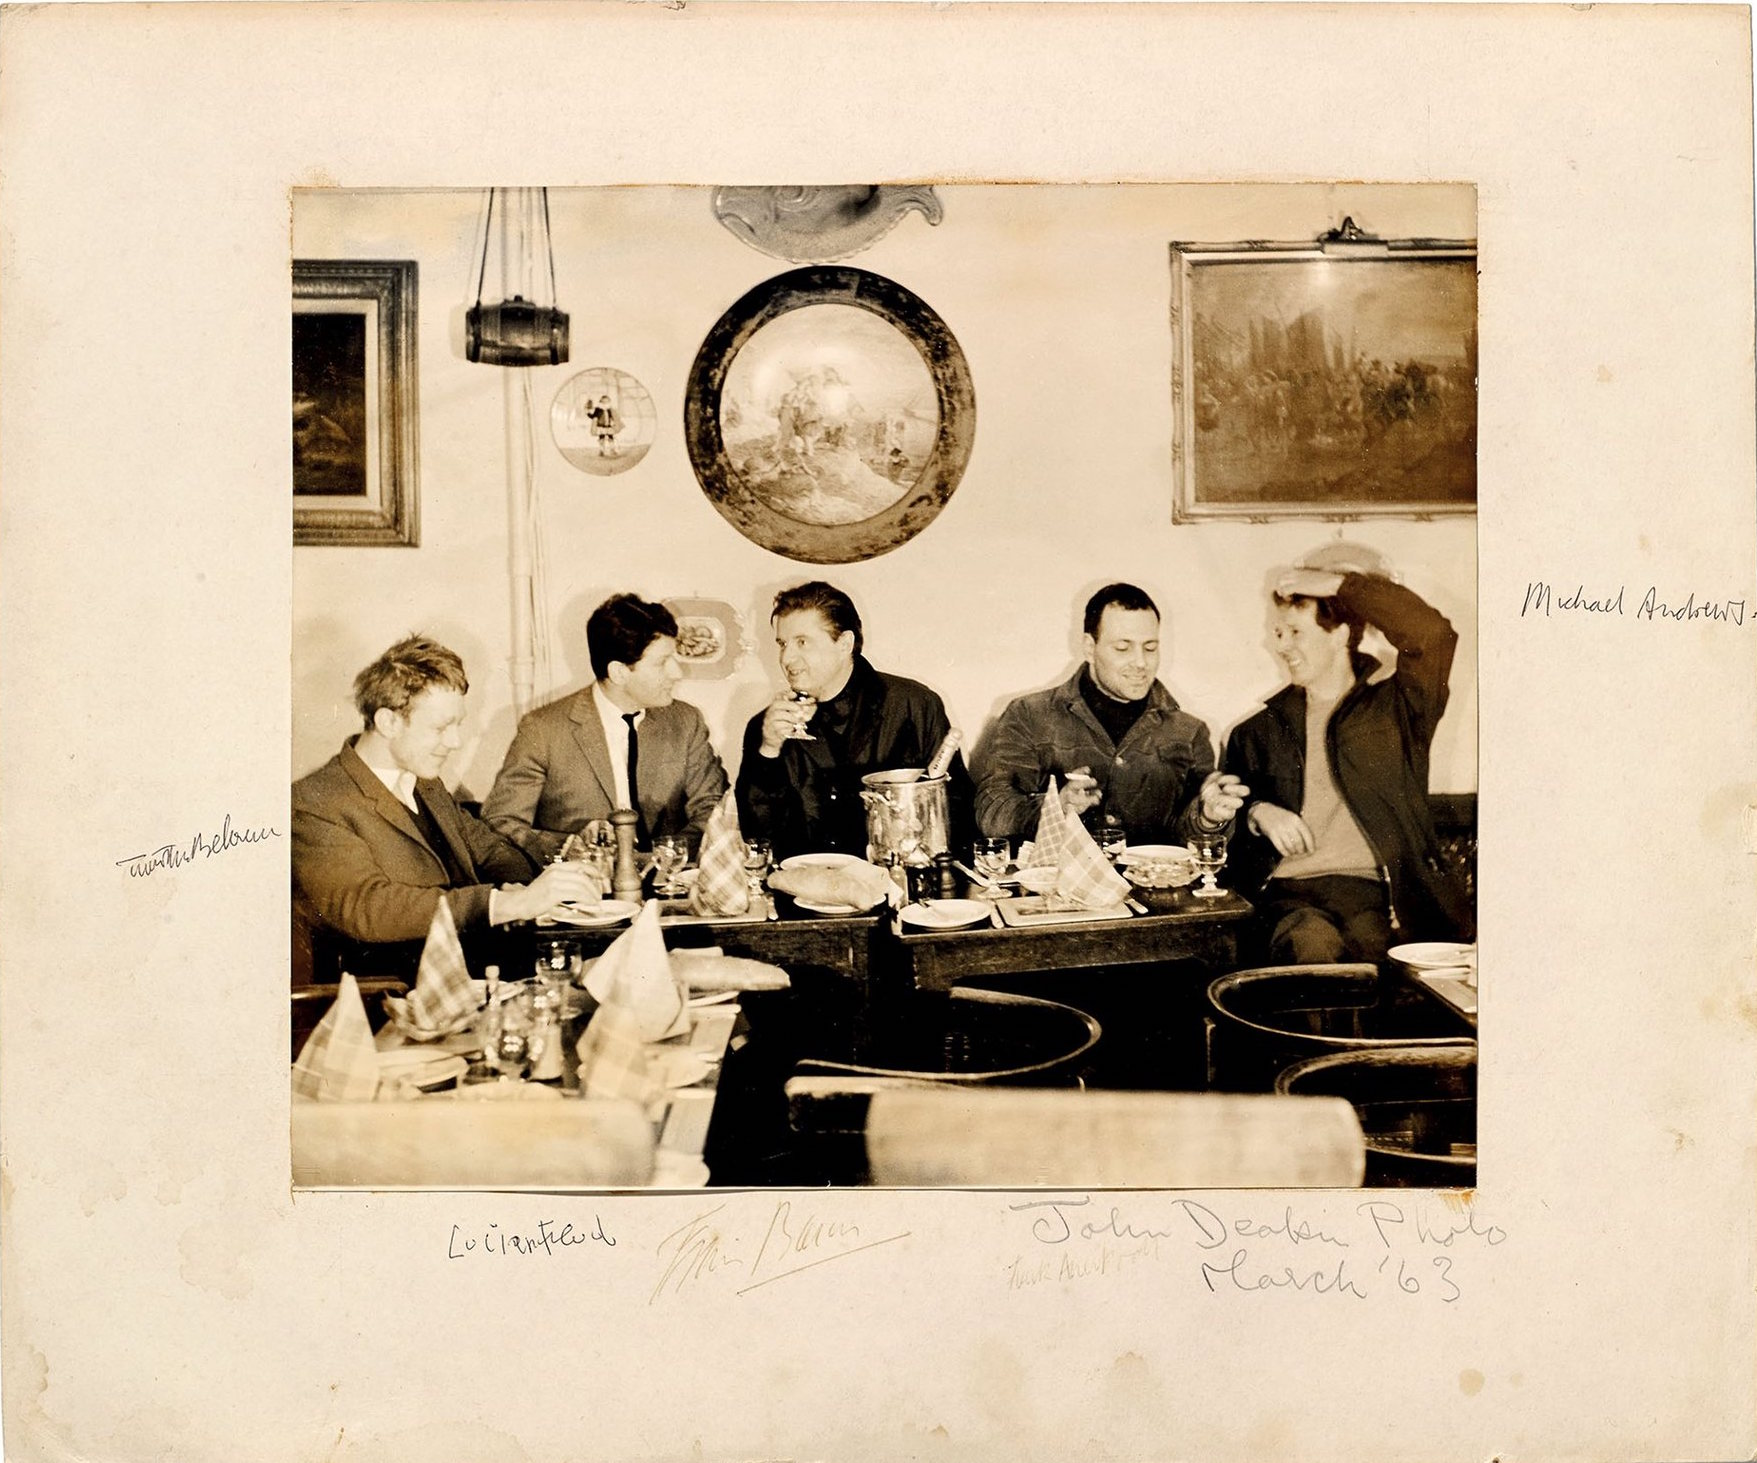 Timothy Behrens, Lucian Freud, Francis Bacon, Frank Auerbach and Michael Andrews at Wheeler's, Old Compton Street, 1963. Photograph: copyright 2014 John Deakin Archive